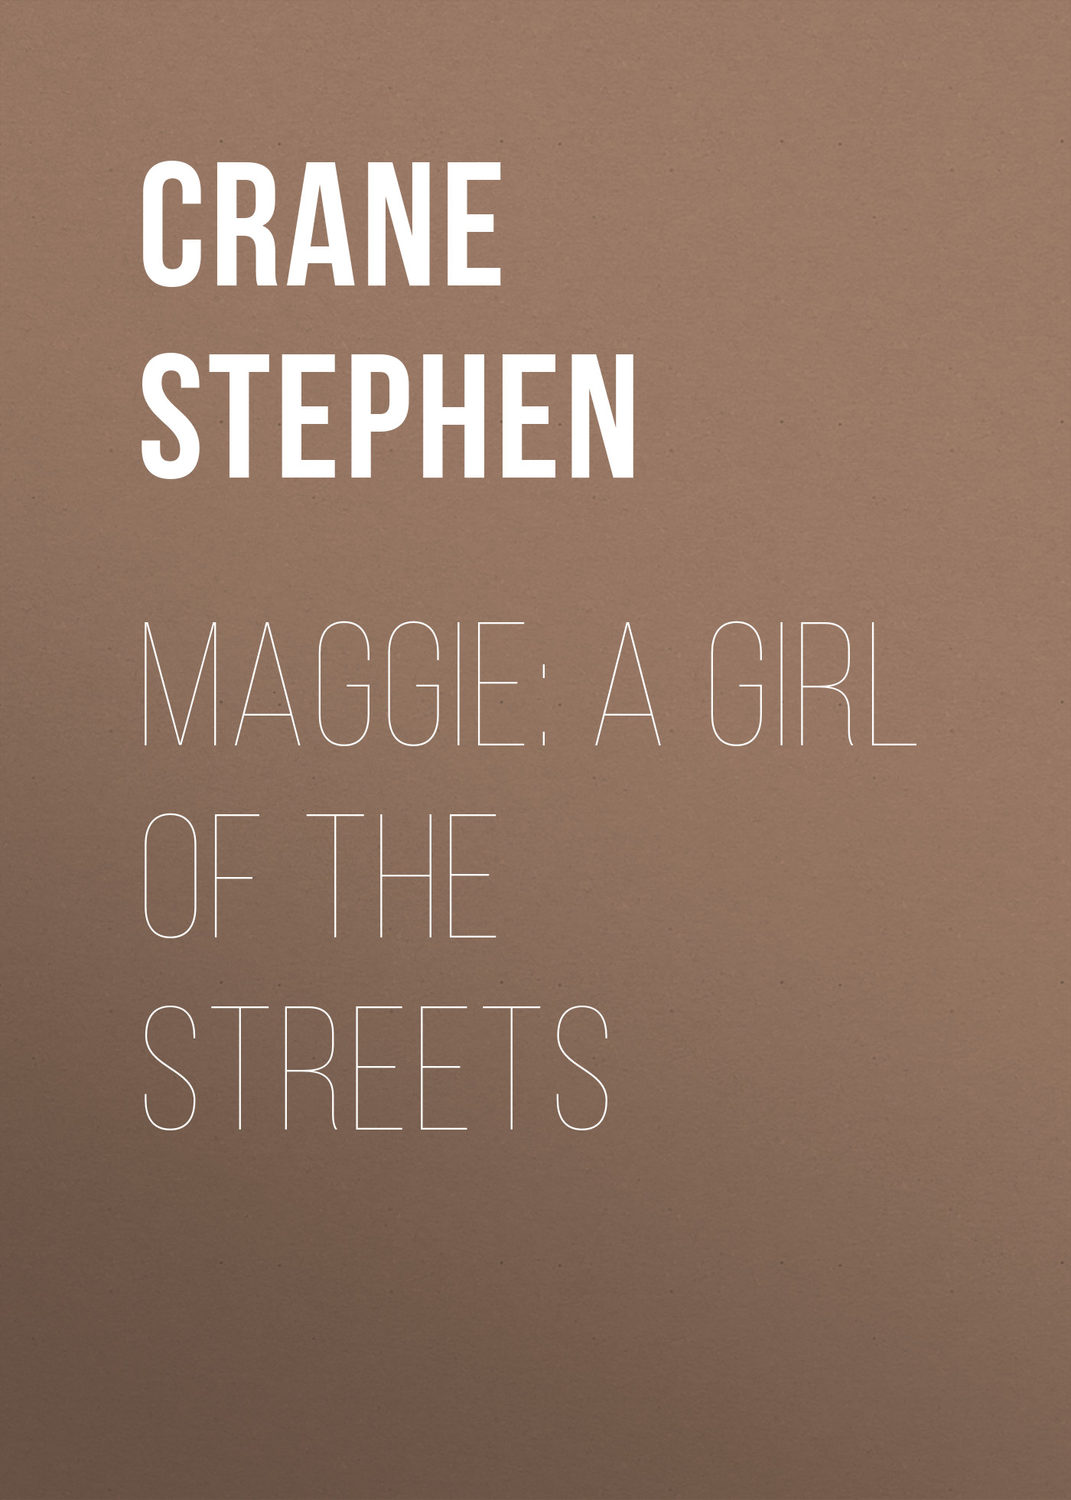 analysis of stephen cranes maggie a girl Literary analysis/stephen crane's maggie:a girl of the streets.